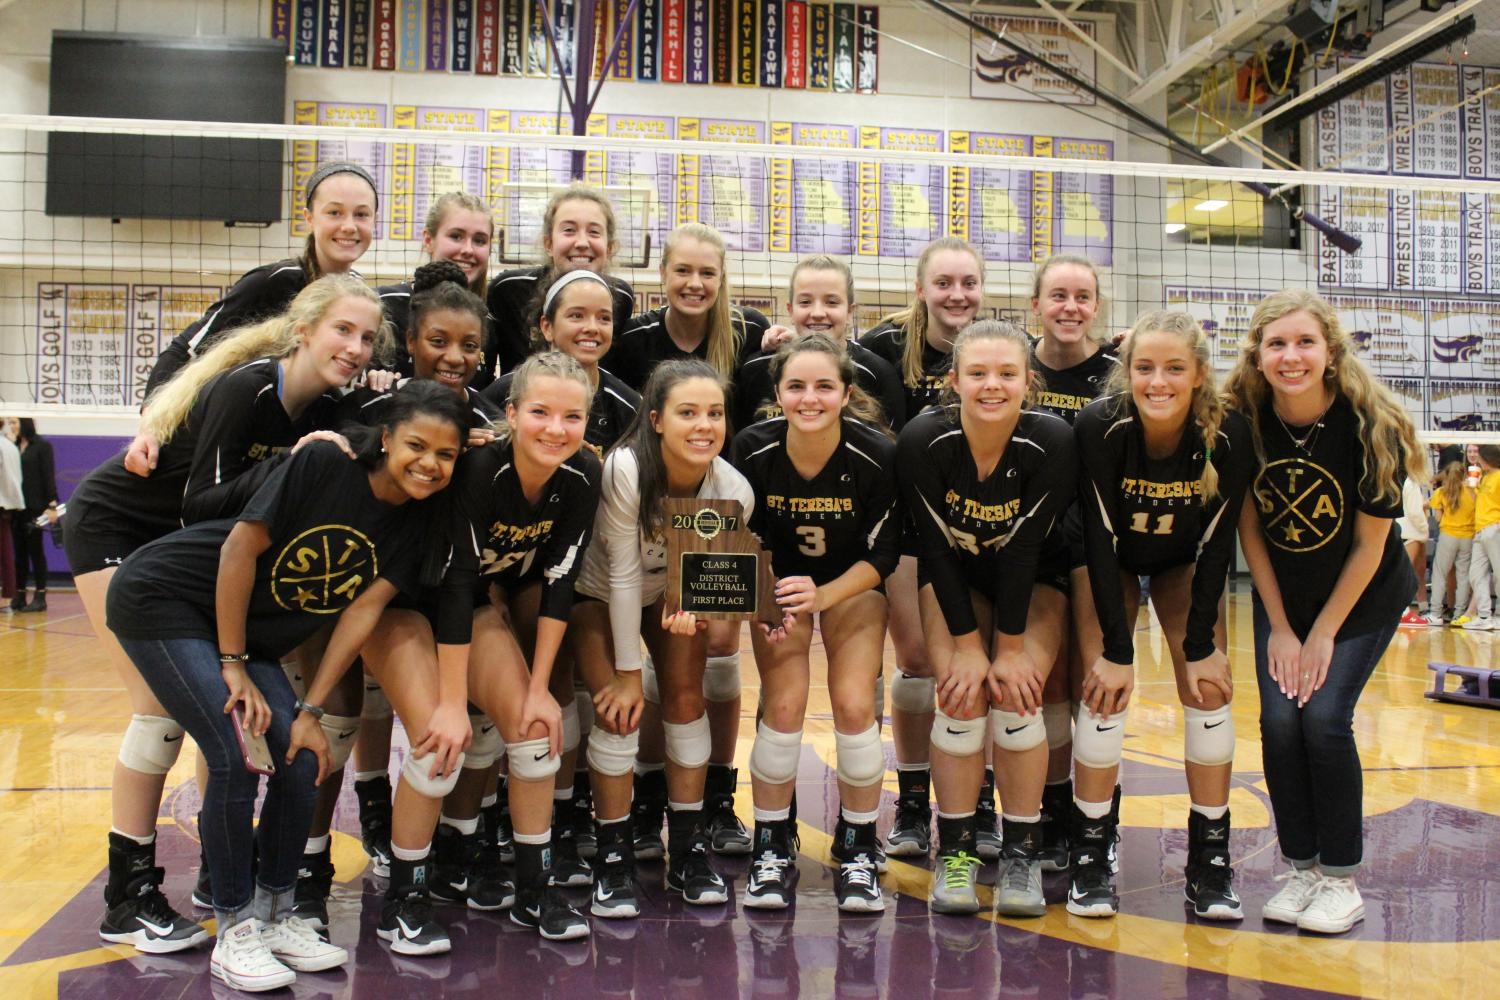 The varsity volleyball team stands together with their first place plaque after winning Districts.